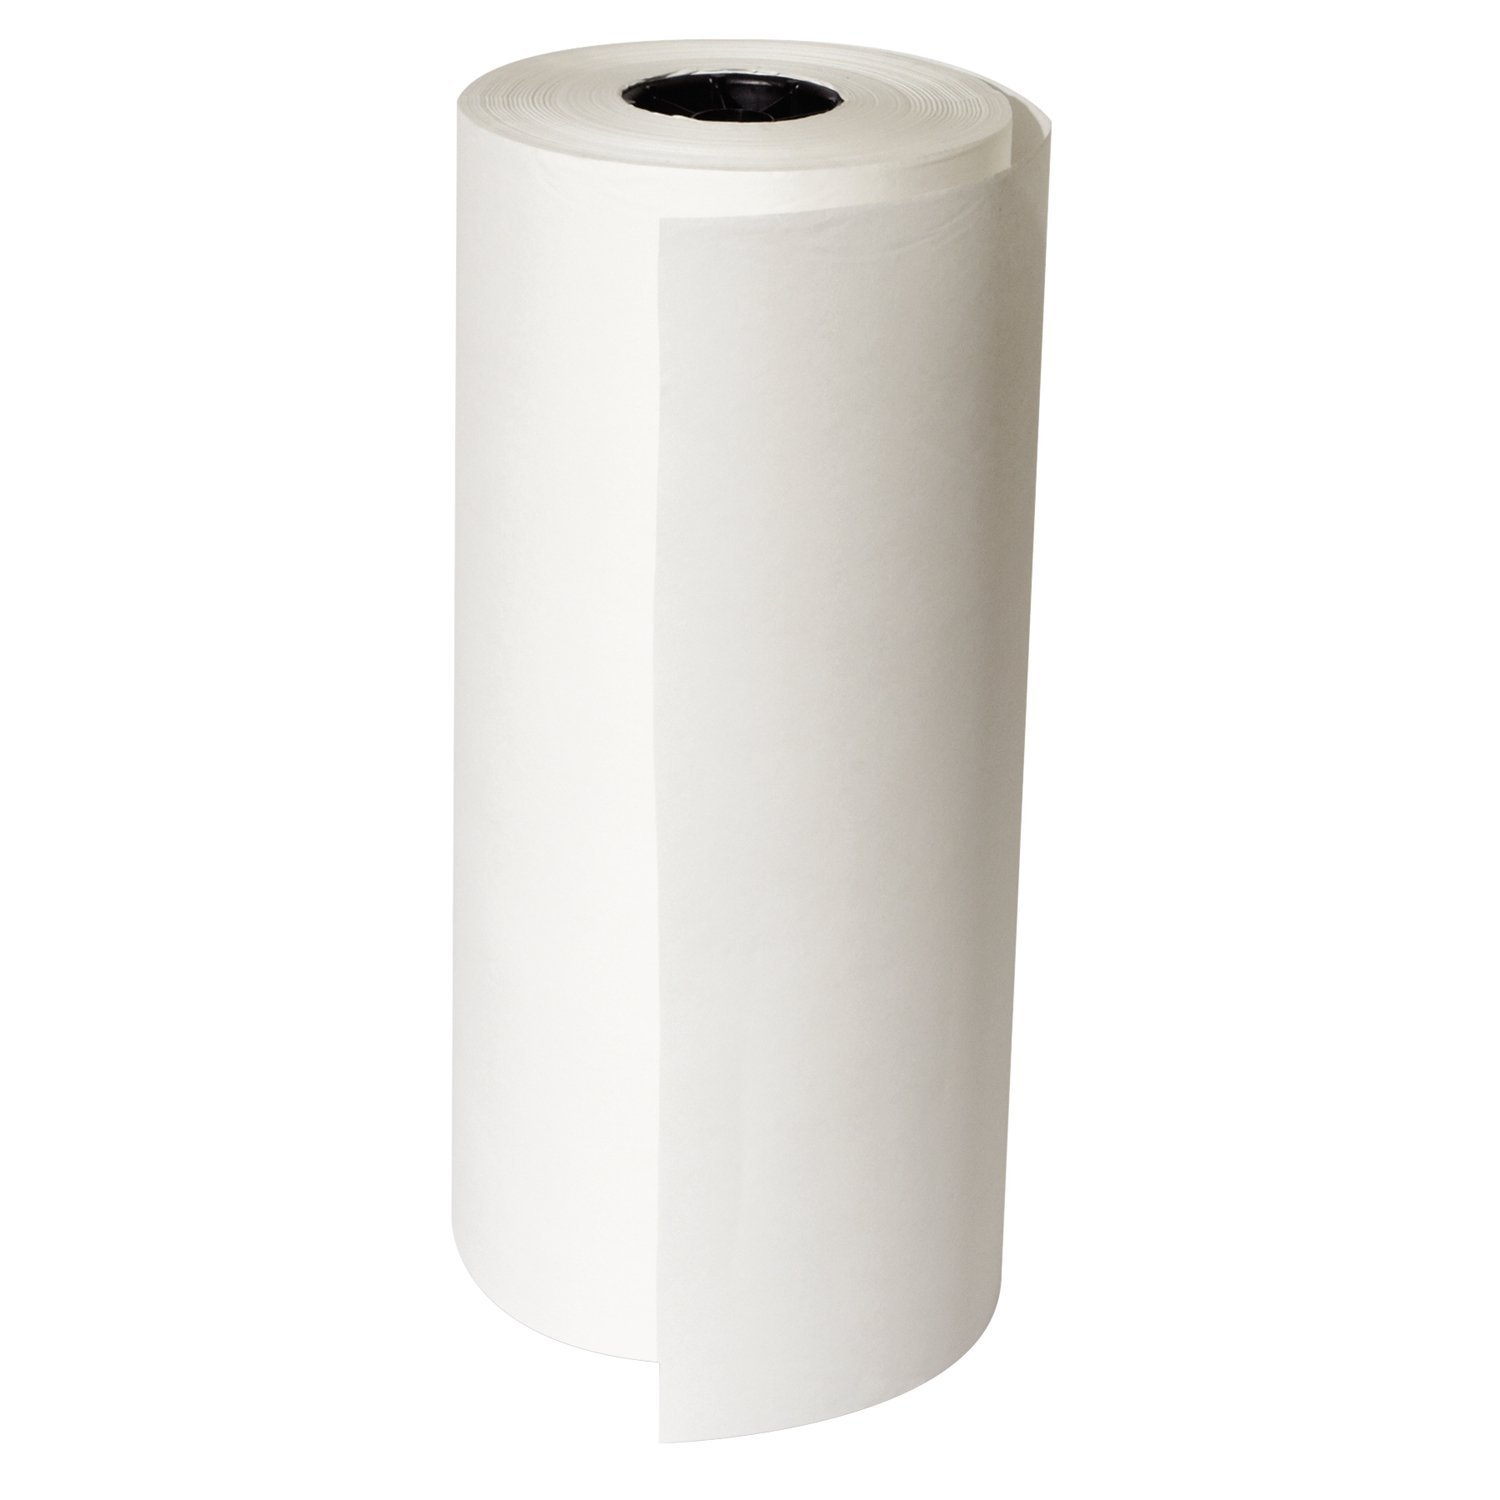 "B2440900 Butcher Paper, 24"" x 900 ft, White Roll, 24 Bleached 1000 Inch roll butcher... by"